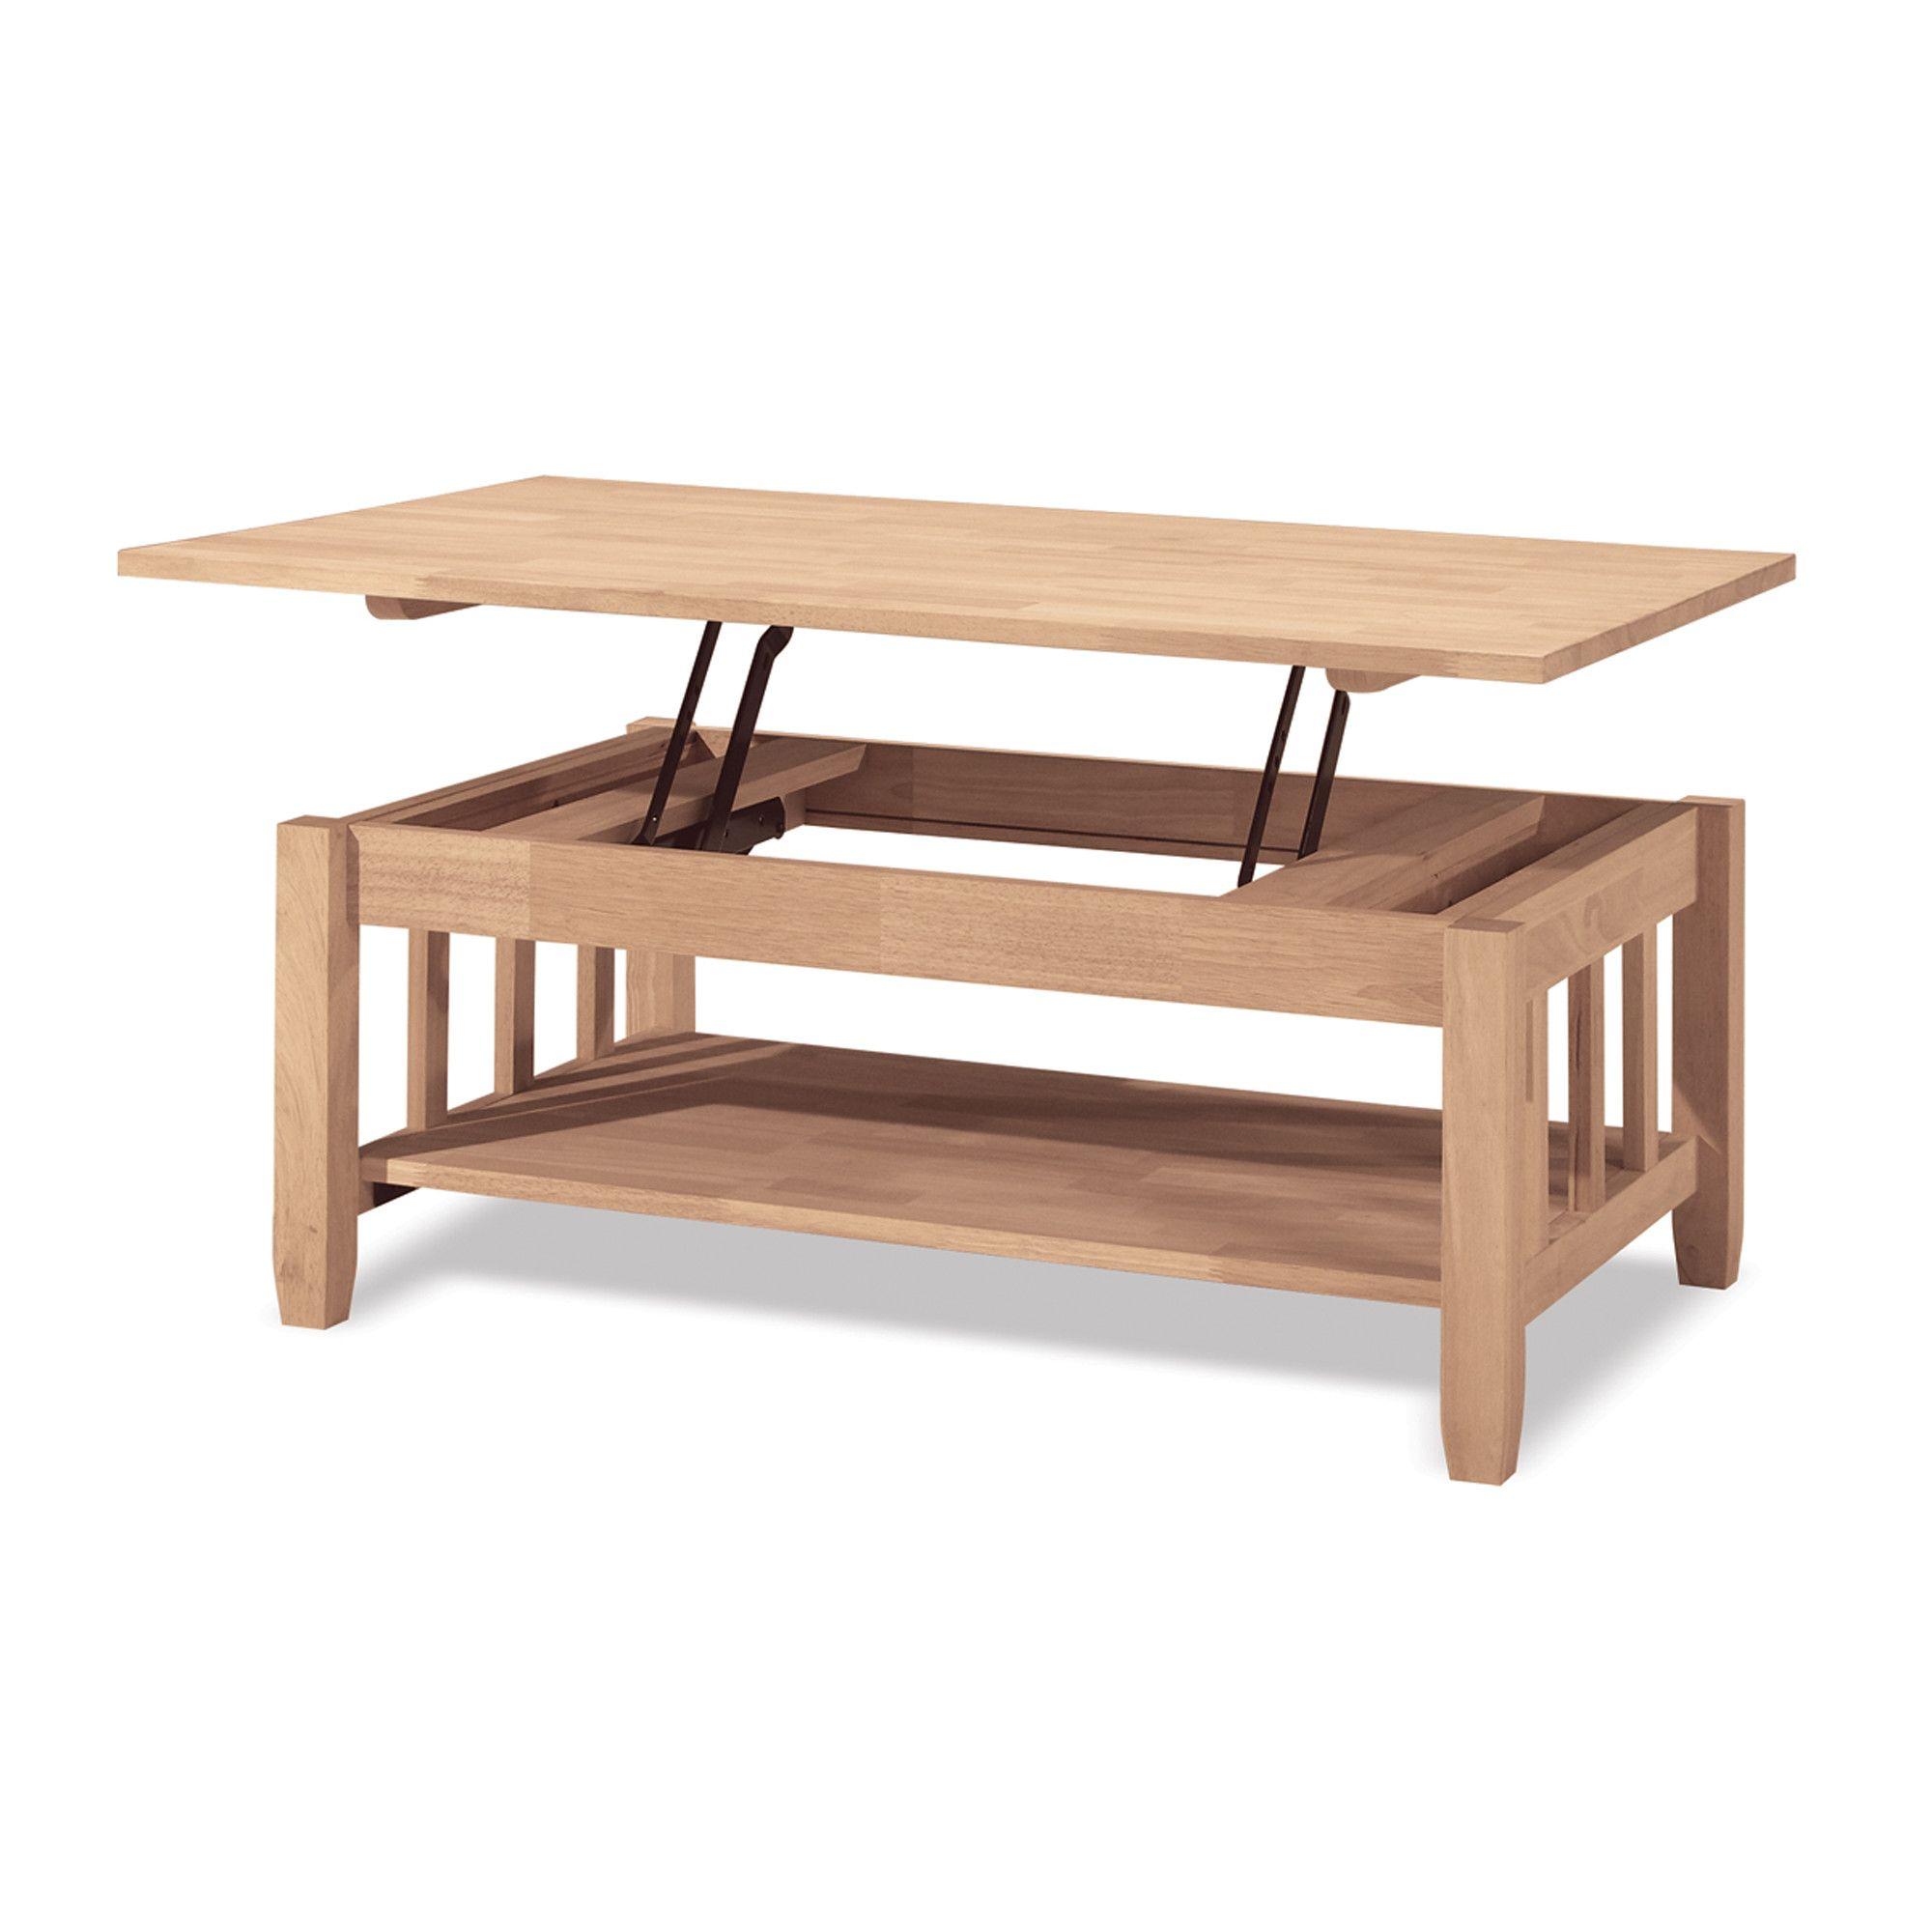 International Concepts Unfinished Wood Mission Coffee Table With Lift Top Mulcrone Manor